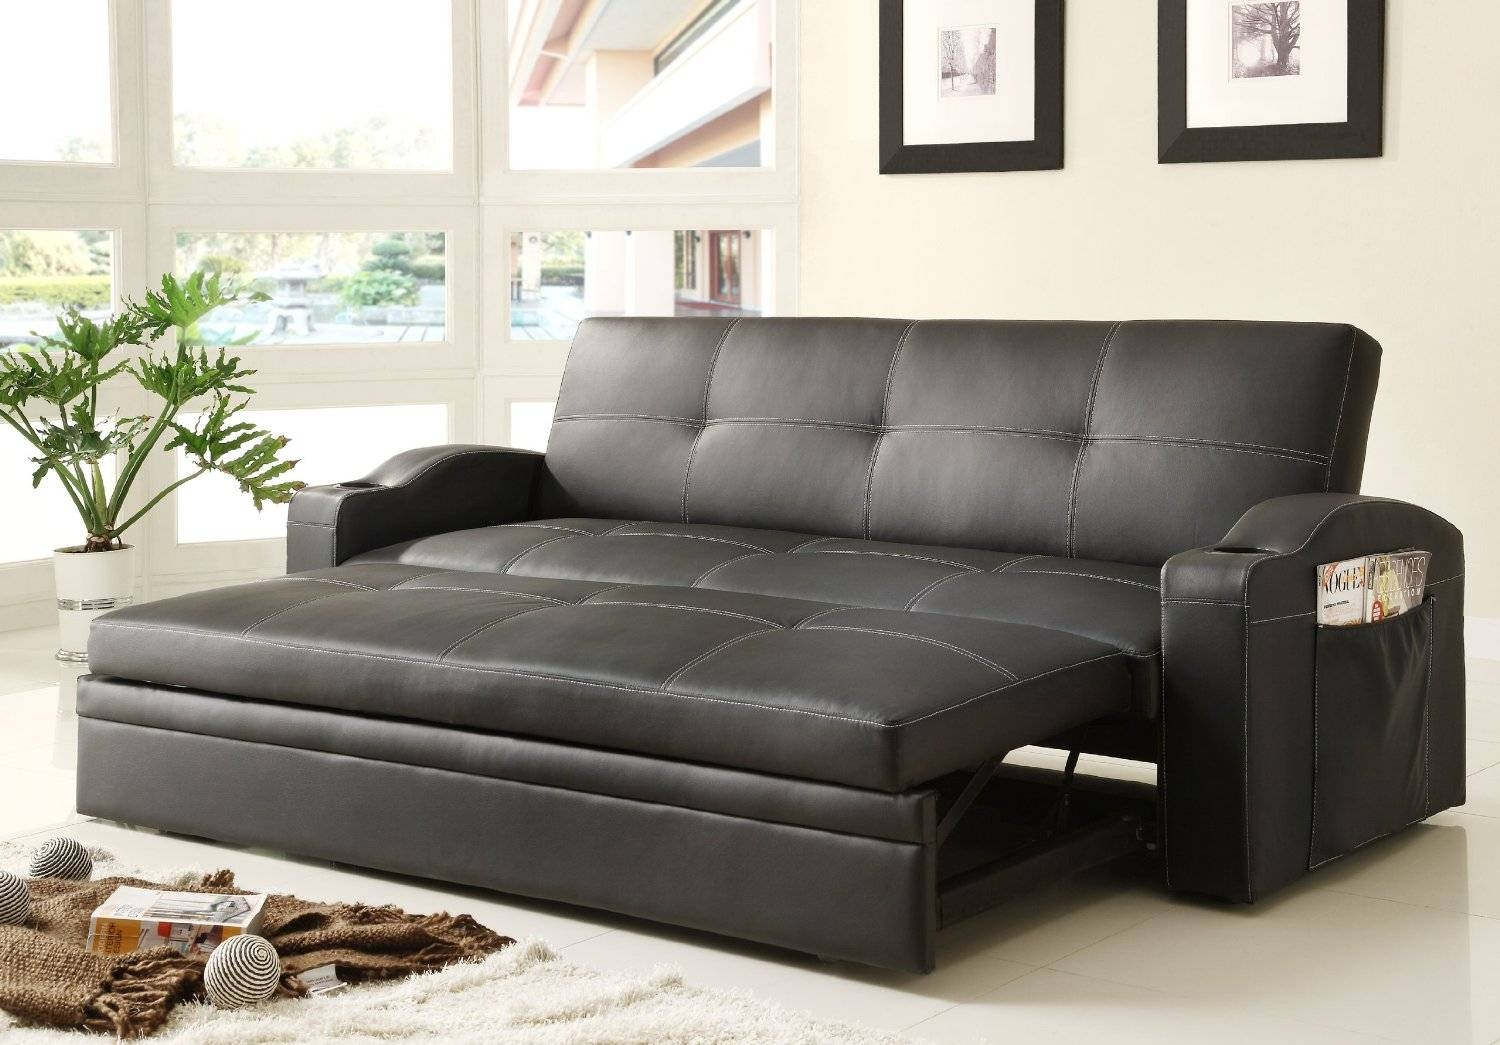 Small Black Leather Sofa Bed | Centerfieldbar intended for Black Leather Convertible Sofas (Image 13 of 15)